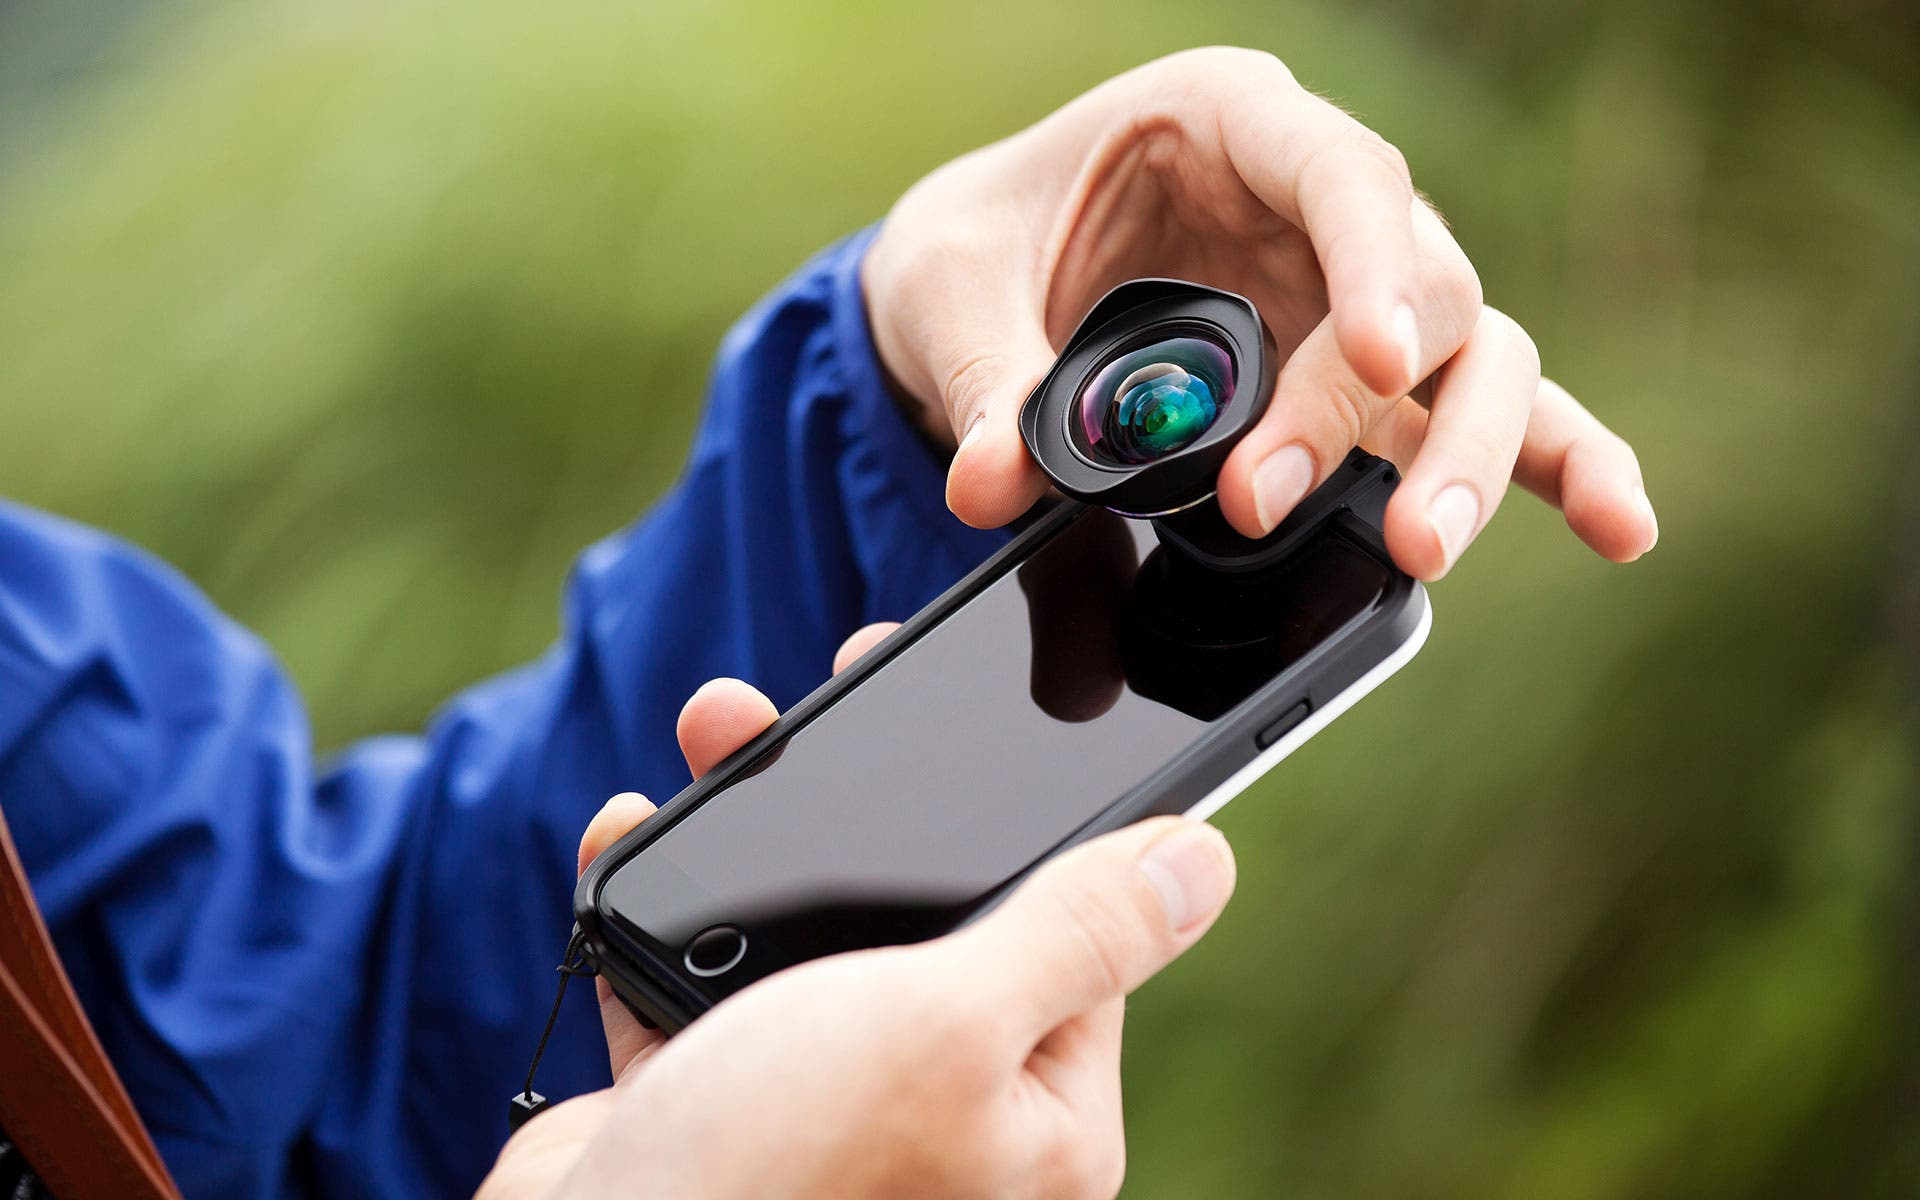 Bitplay's New CLIP For iPhone Works With All Bitplay Lenses